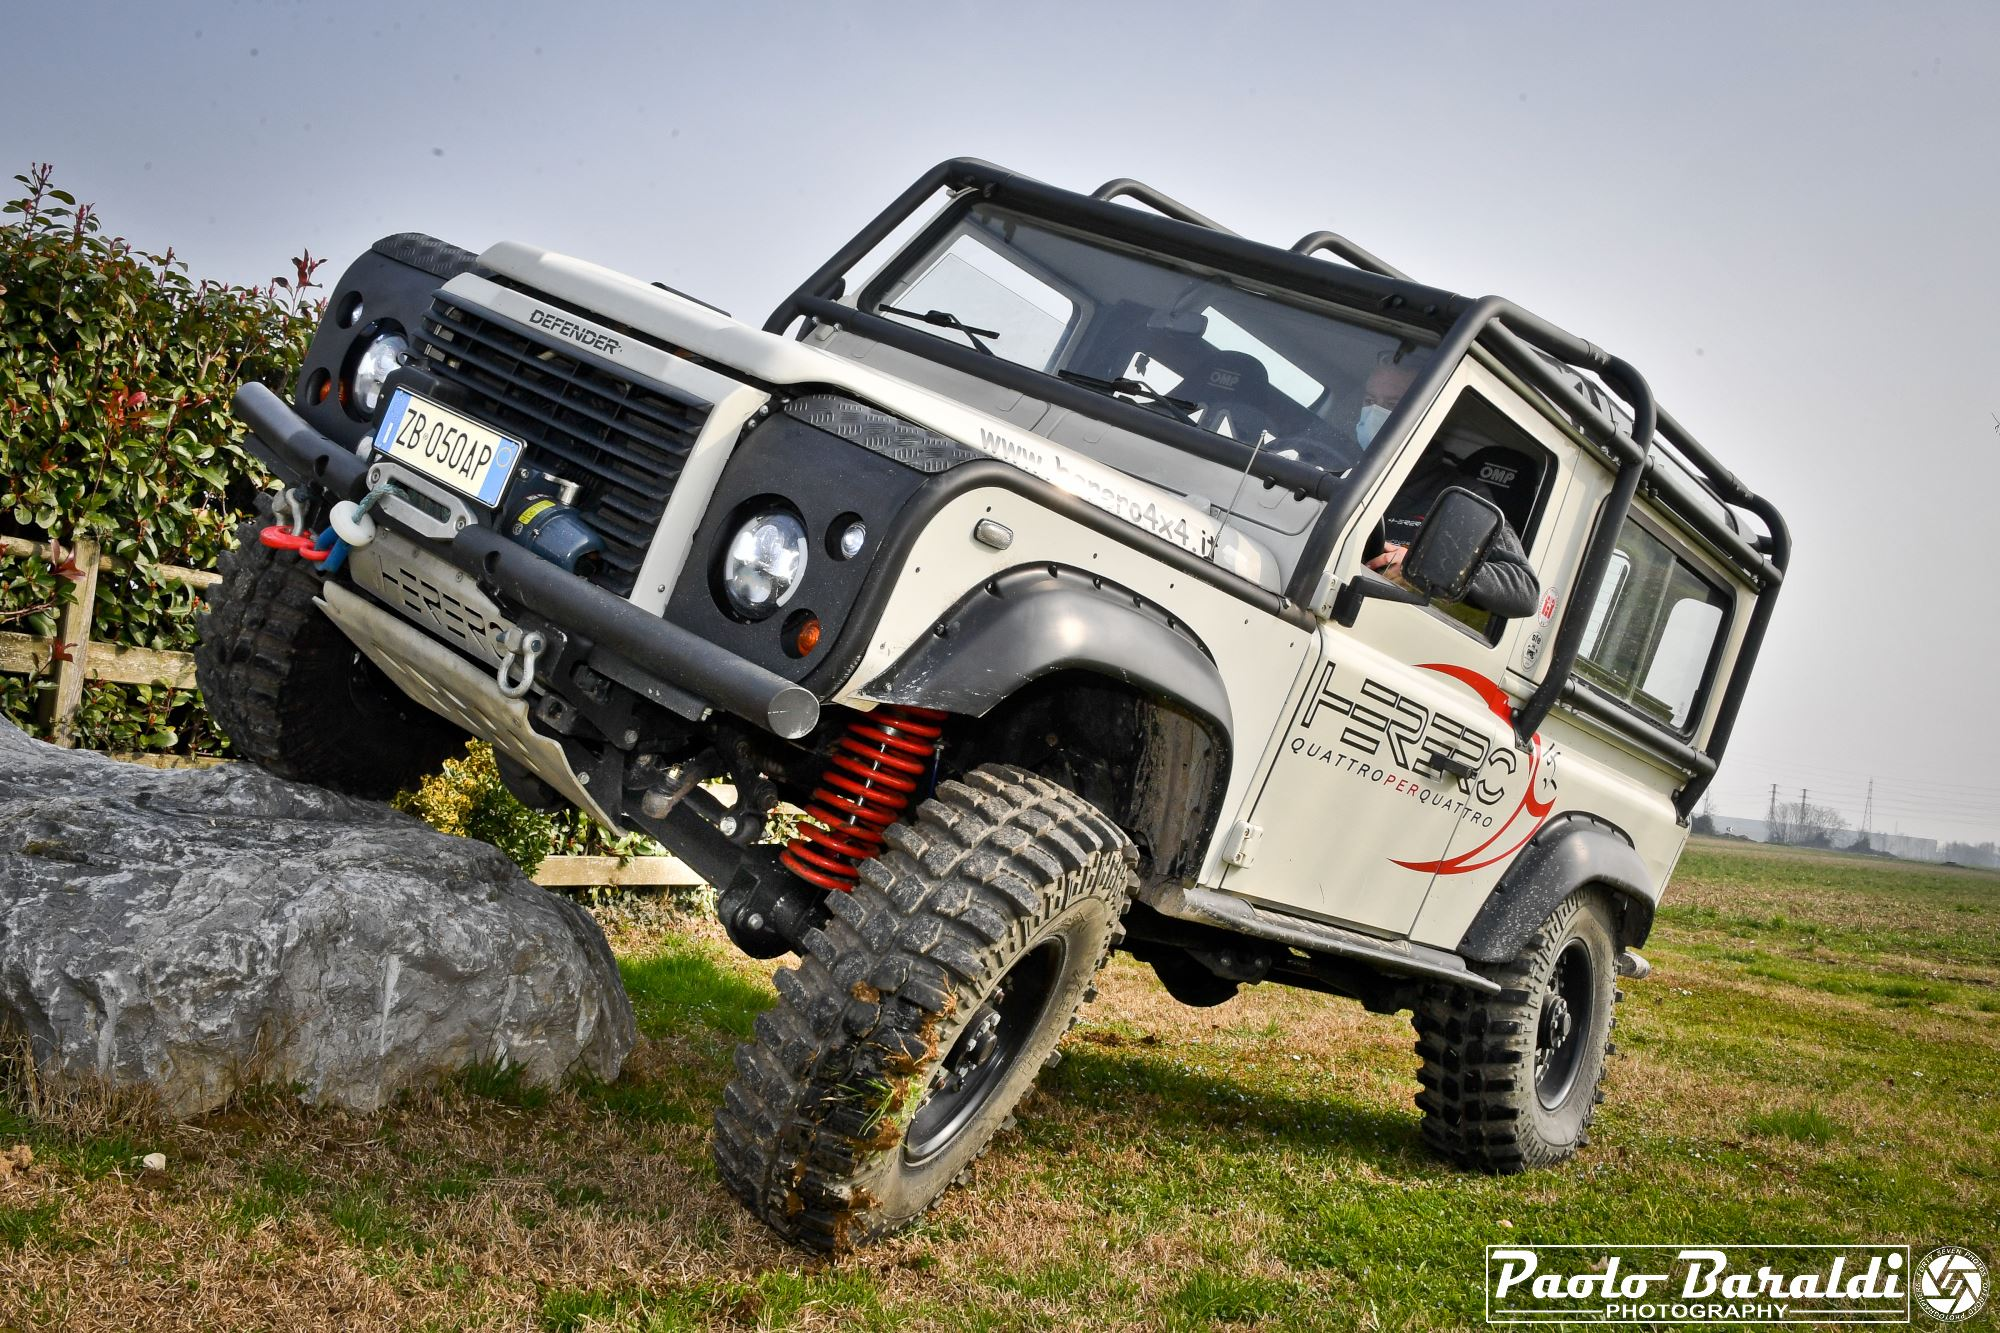 Herero 4x4 Ultimate Defender. No matter the latitude you are